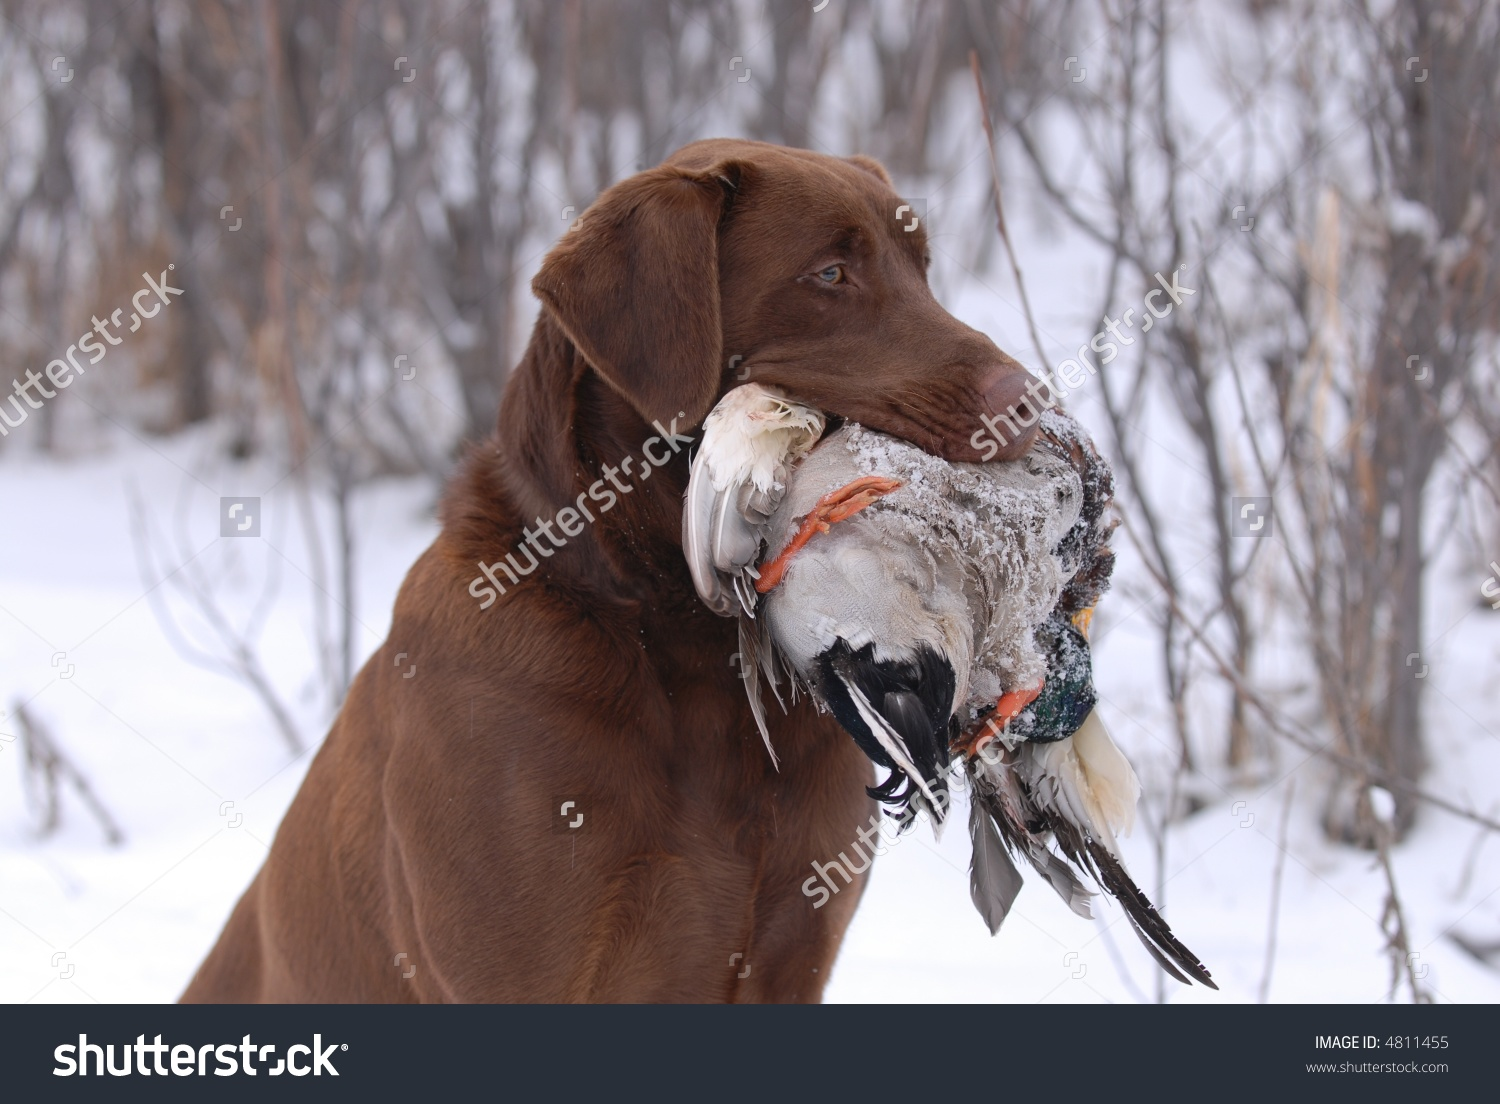 Chocolate Labrador Holding Duck Stock Photo 4811455.